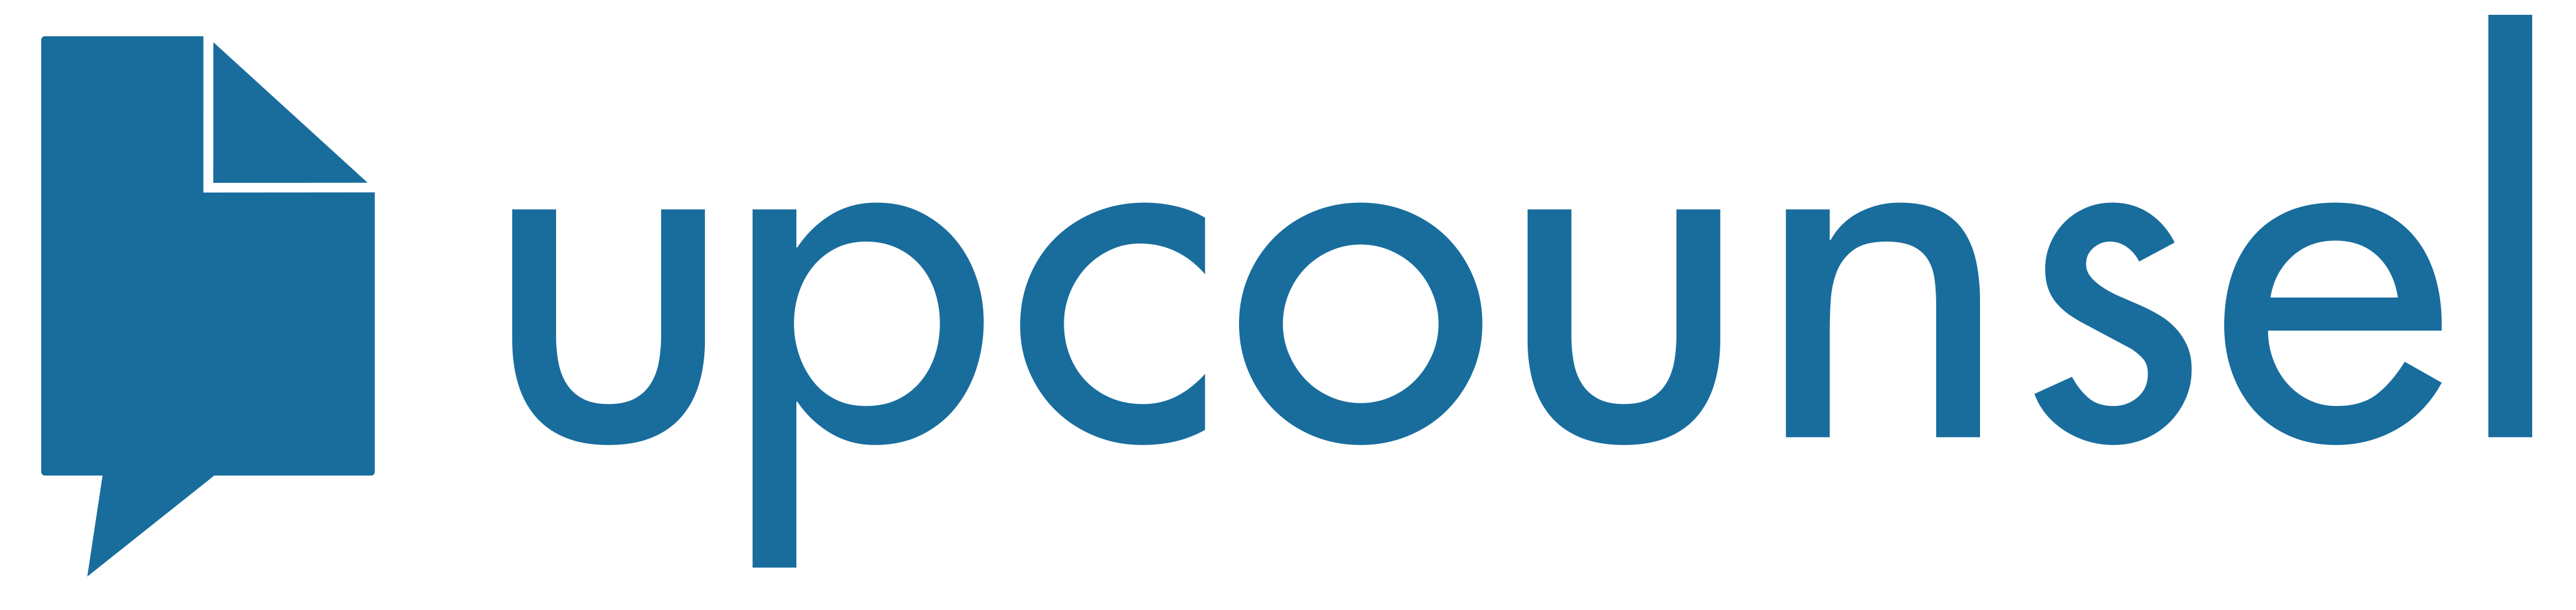 Find A Small Business Lawyer Avvo Vs Upcounsel